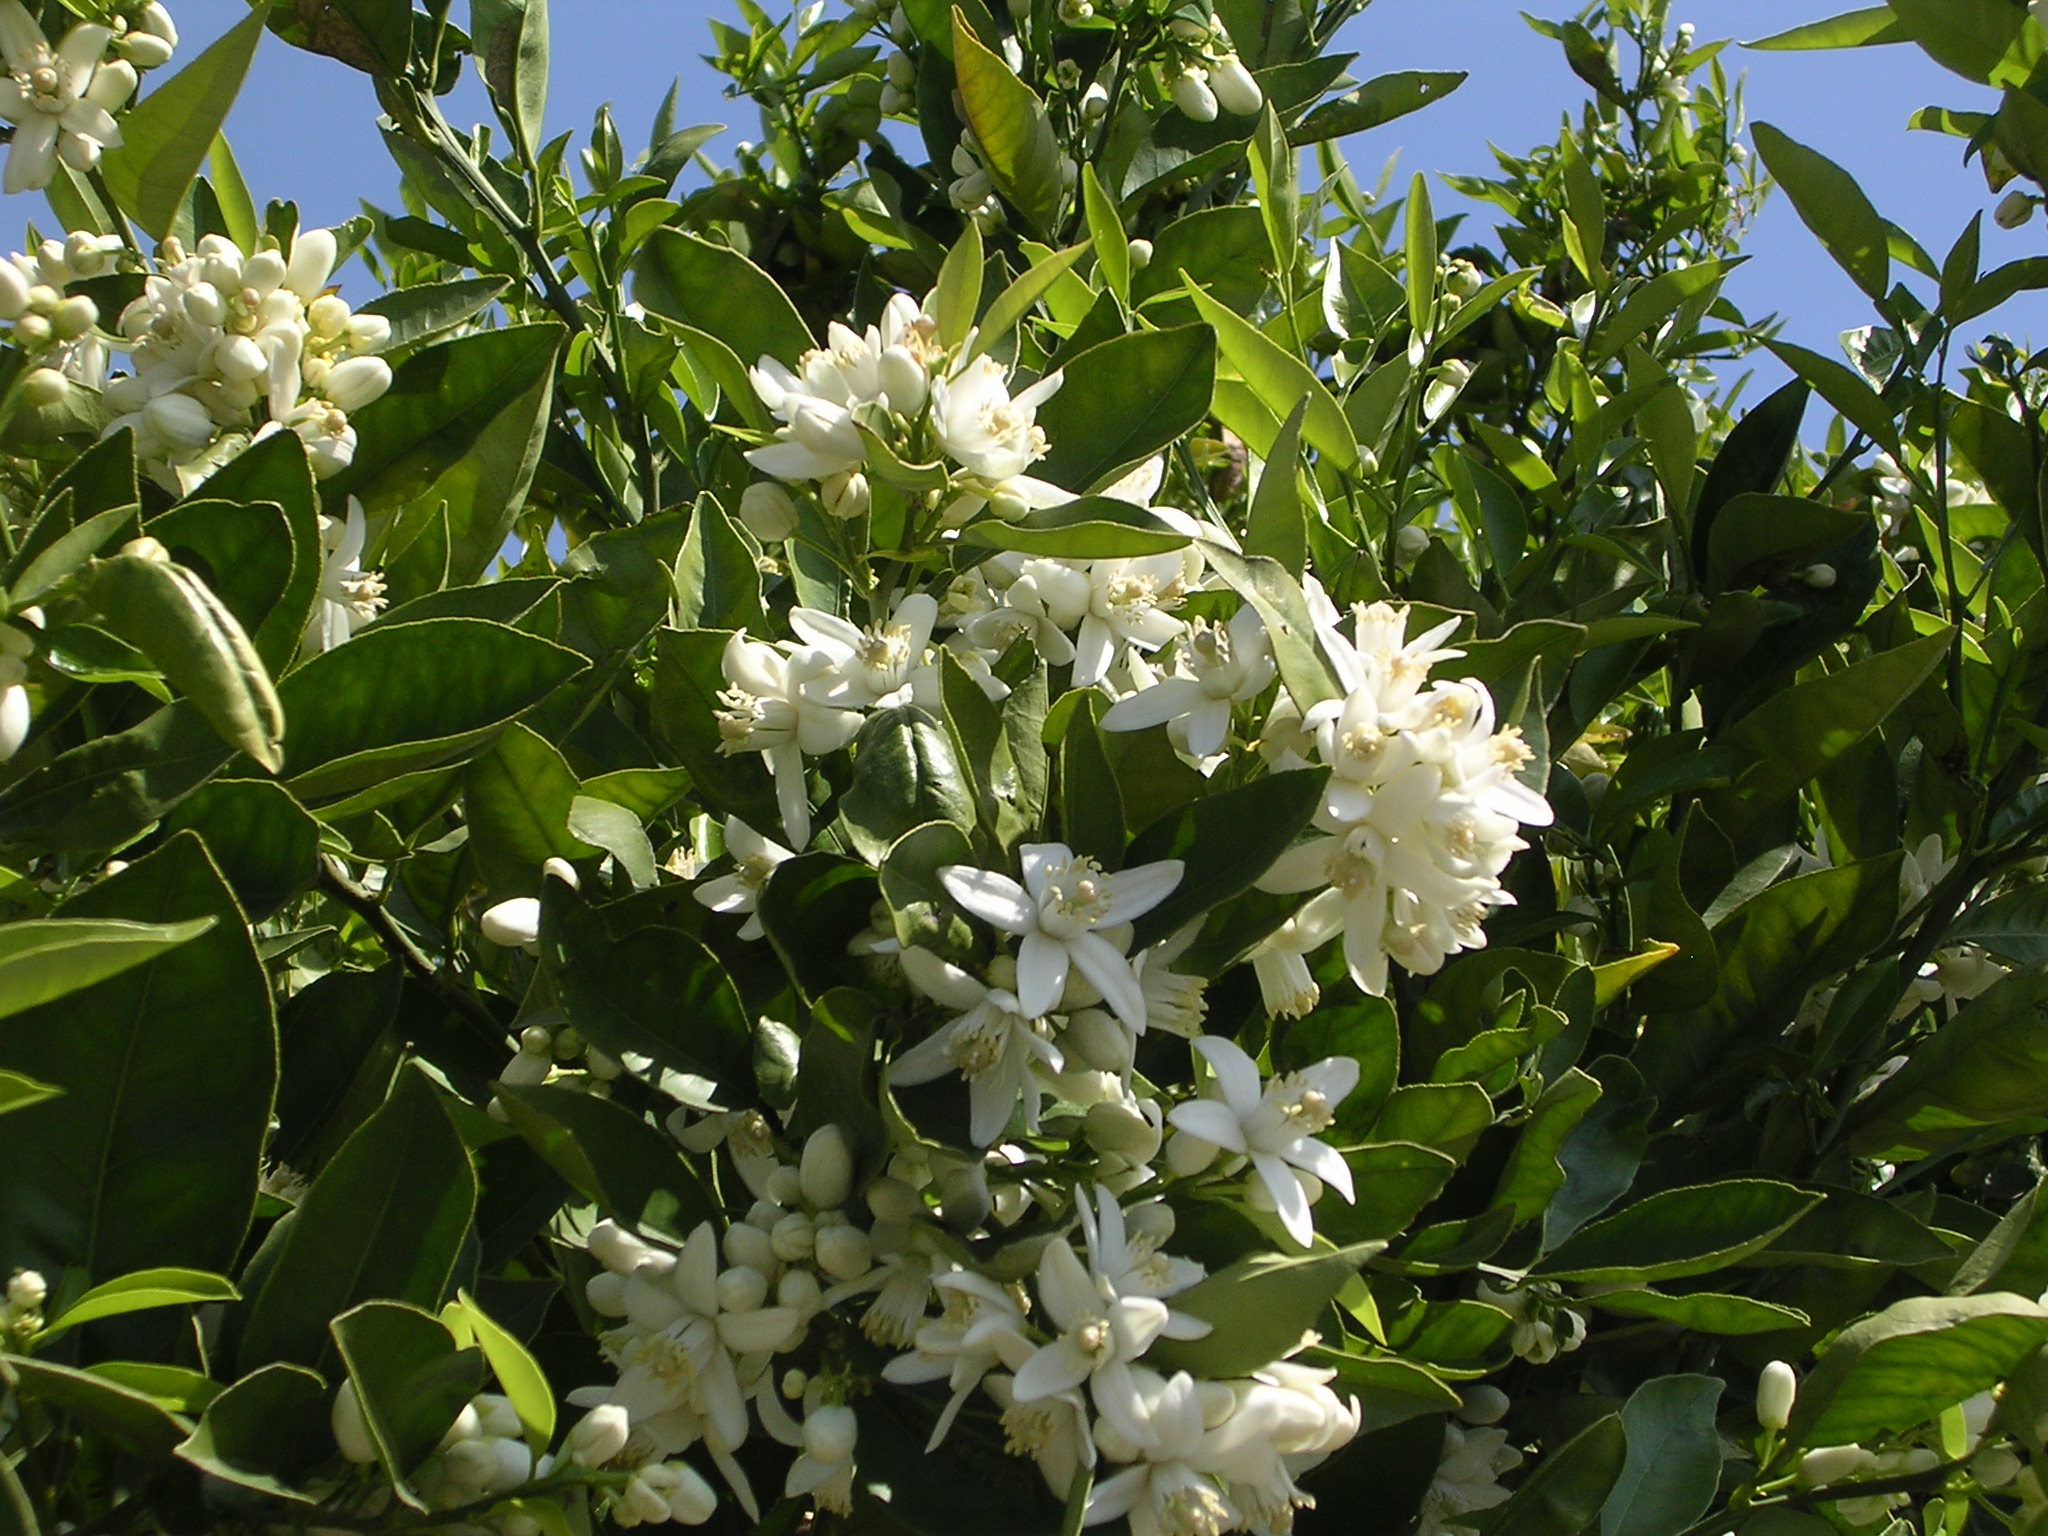 Citrus trees such as this orange tree have lovely sweet smeling blossoms and do very well in Lakeside